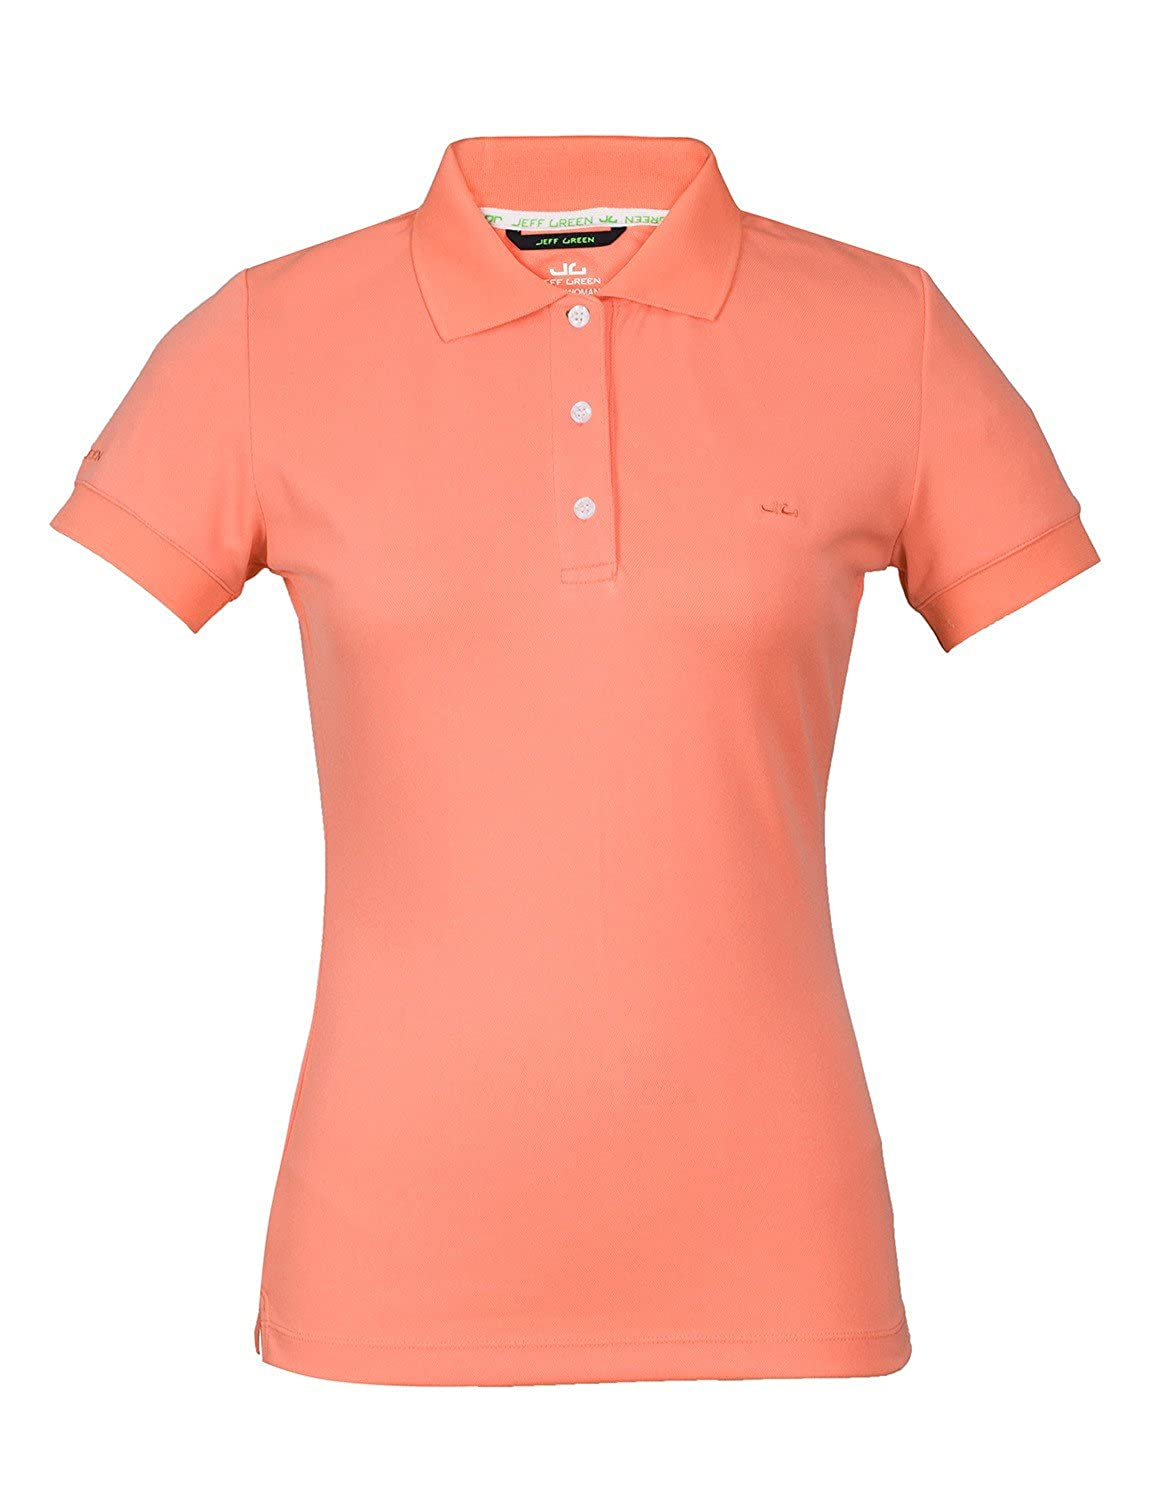 Jeff Green Womens Cadet Breathable Functional Poloshirt